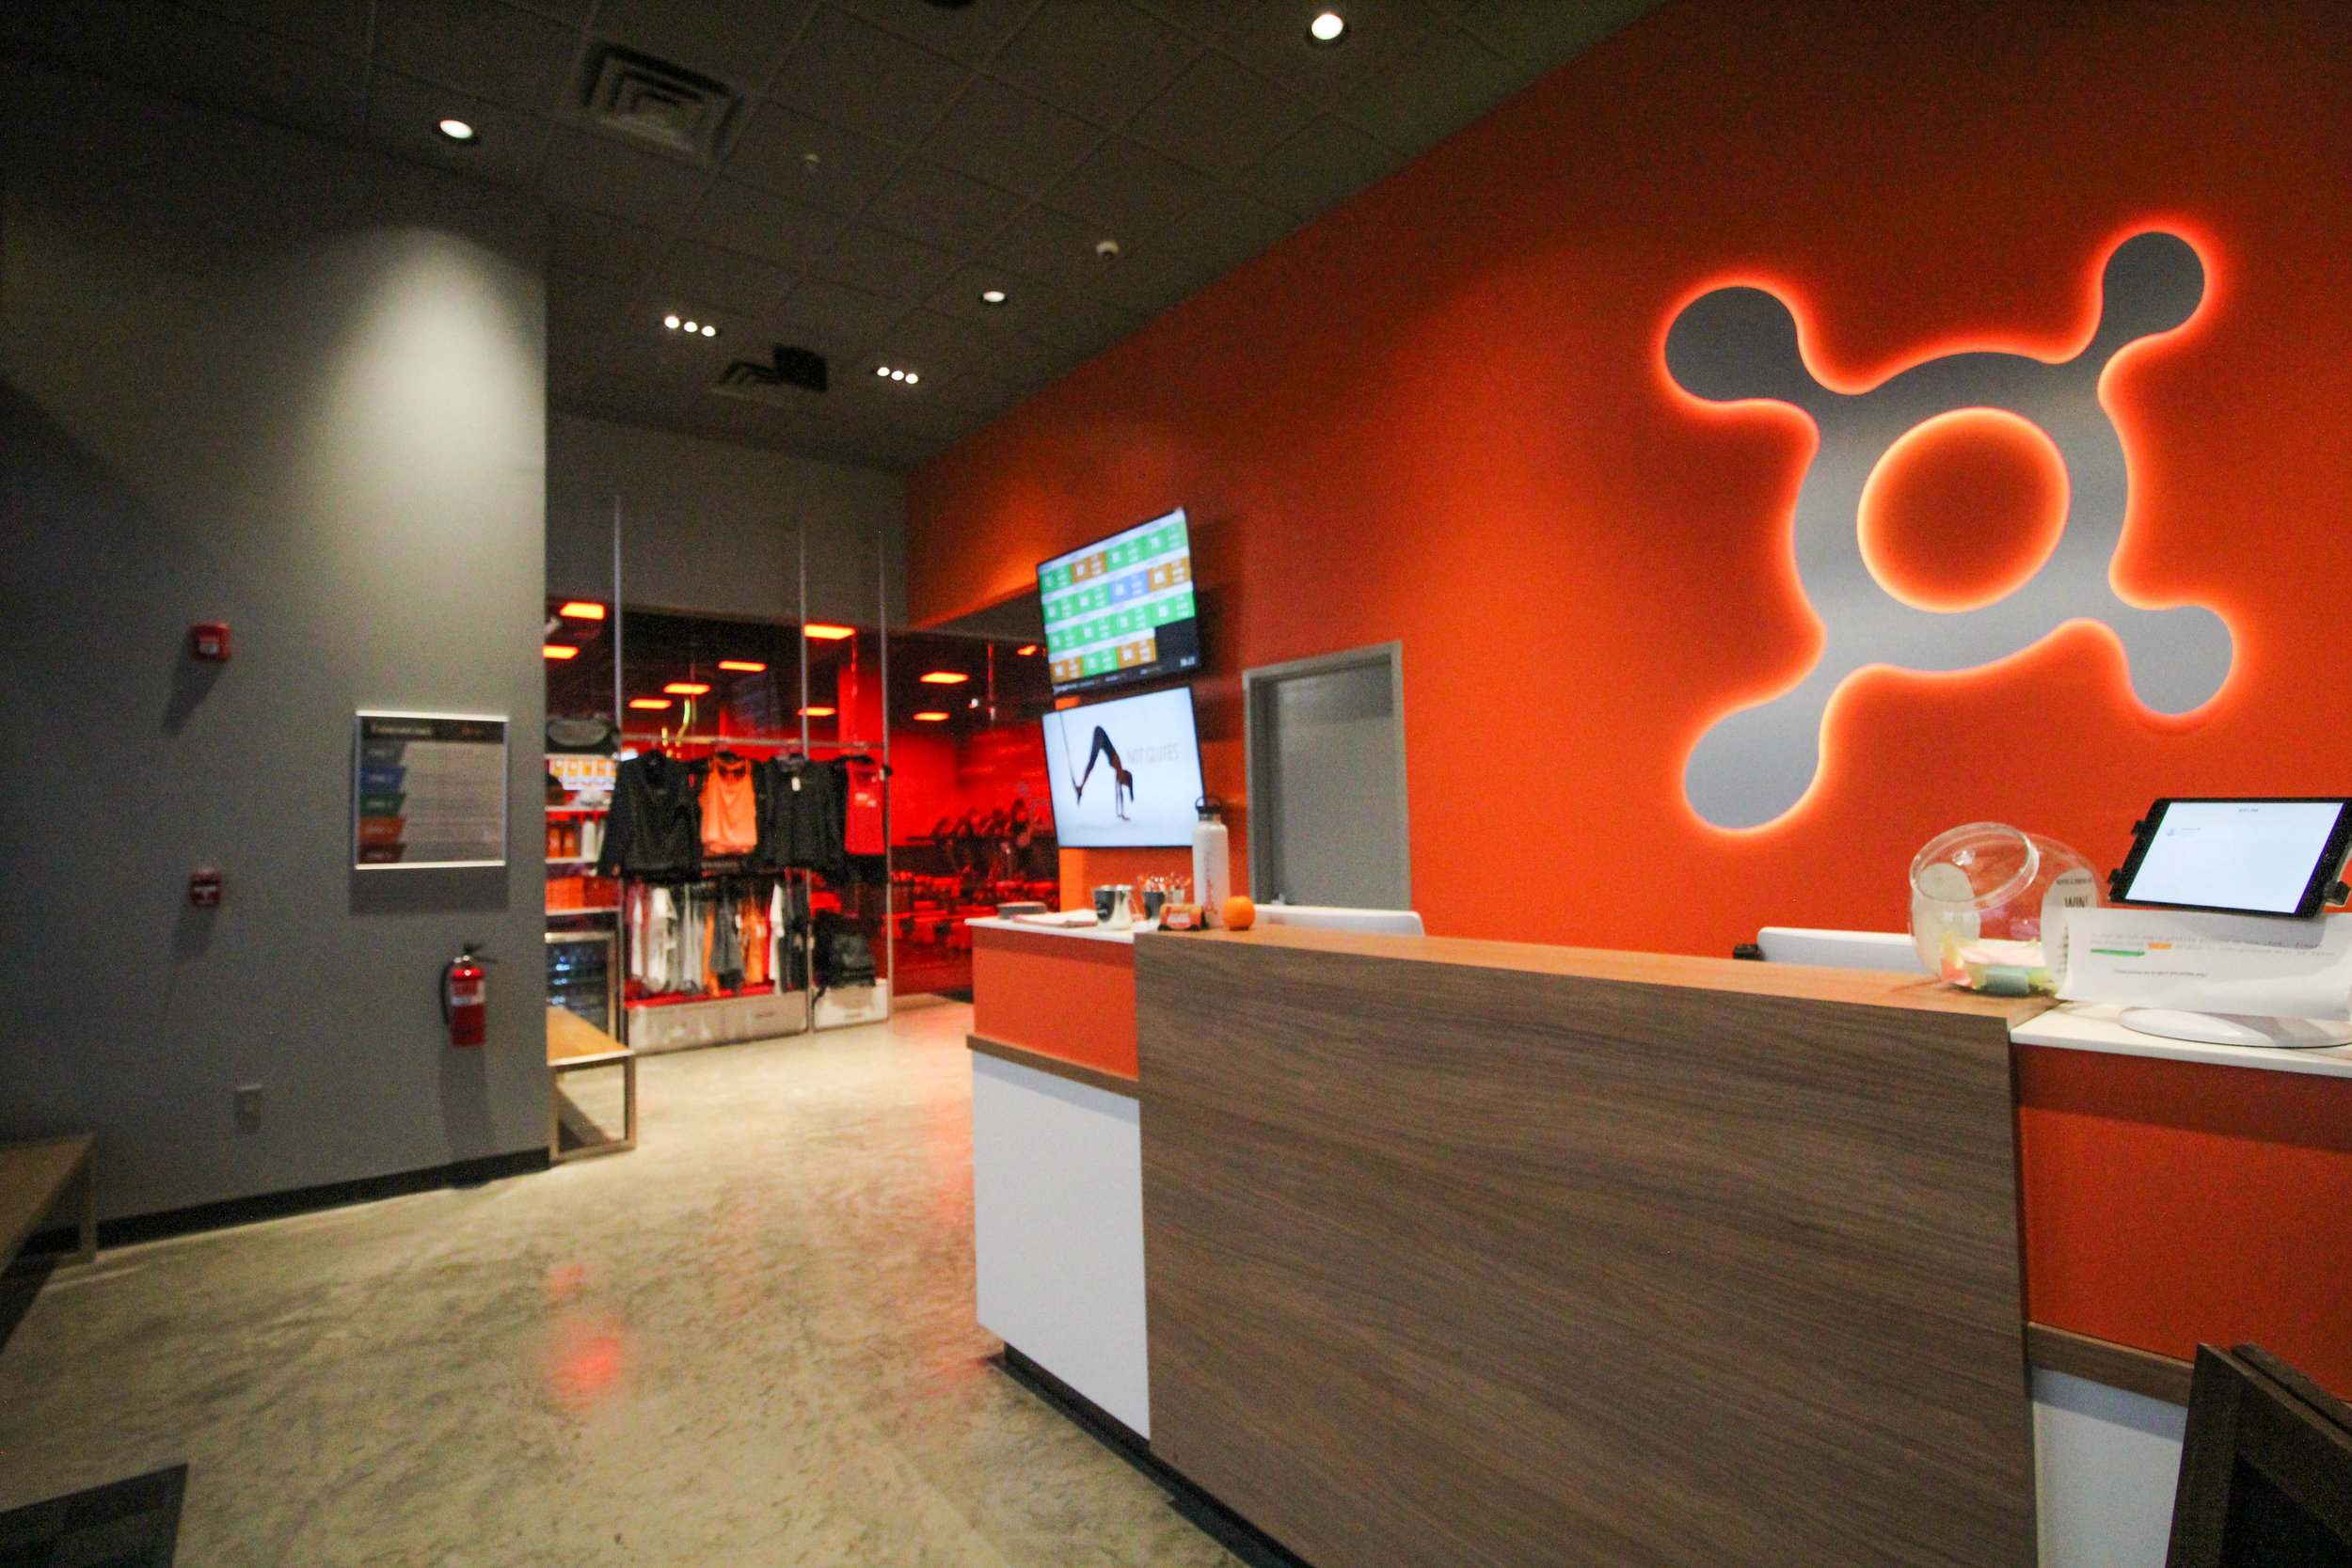 Commercial Space Orange Theory Fitness1.jpg